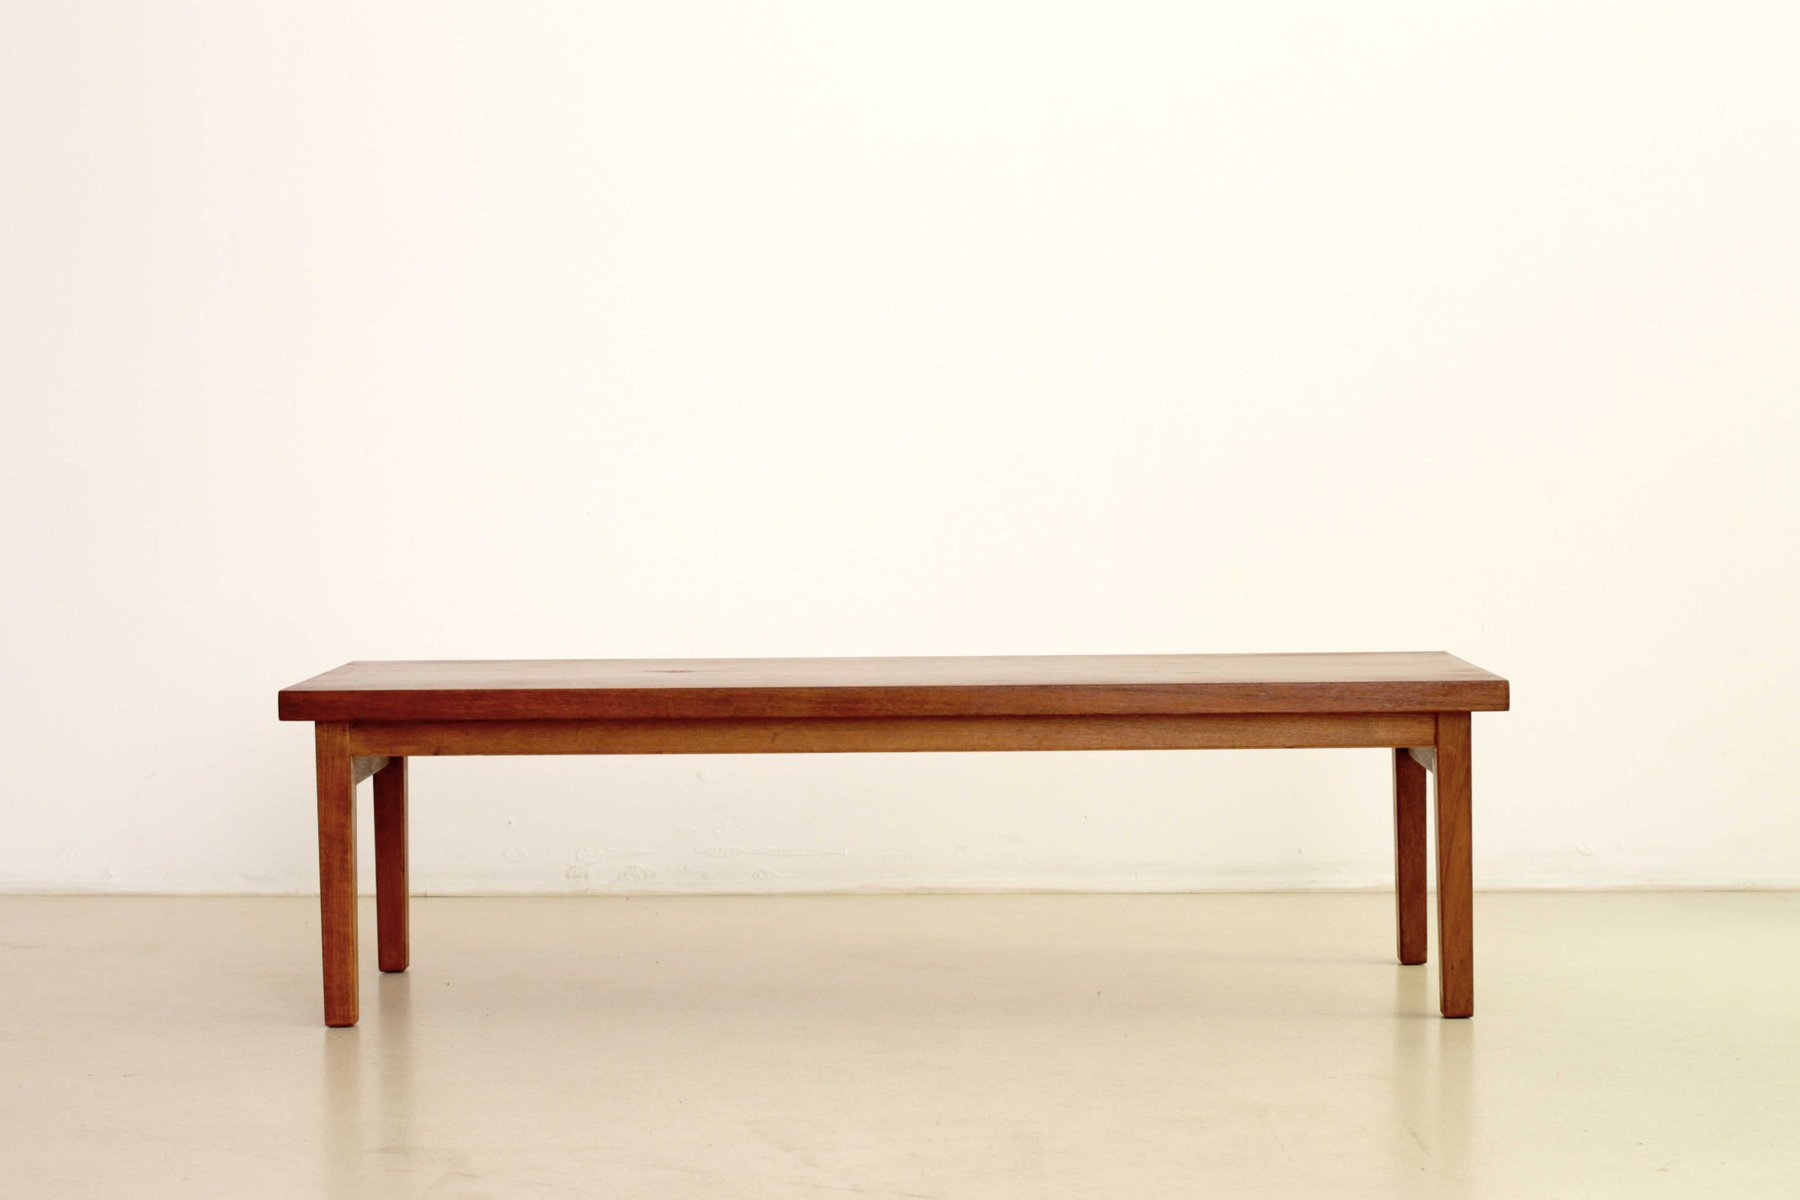 Rectangular Scandinavian Teak Coffee Table 1950s for sale at Pamono